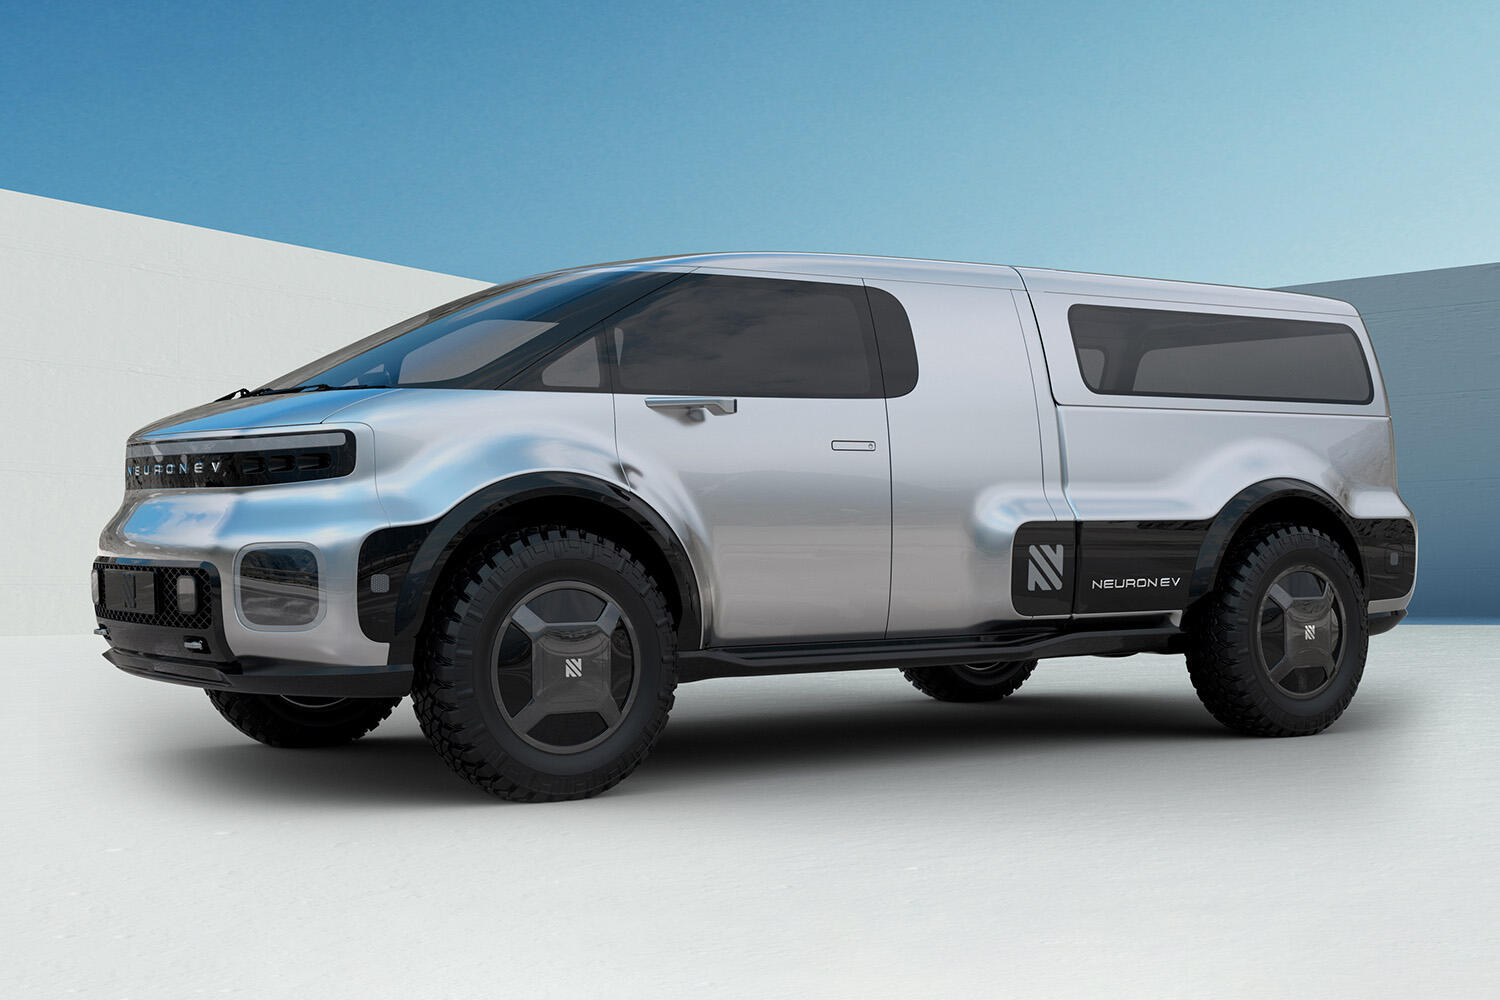 Neuron T/One electric utility vehicle